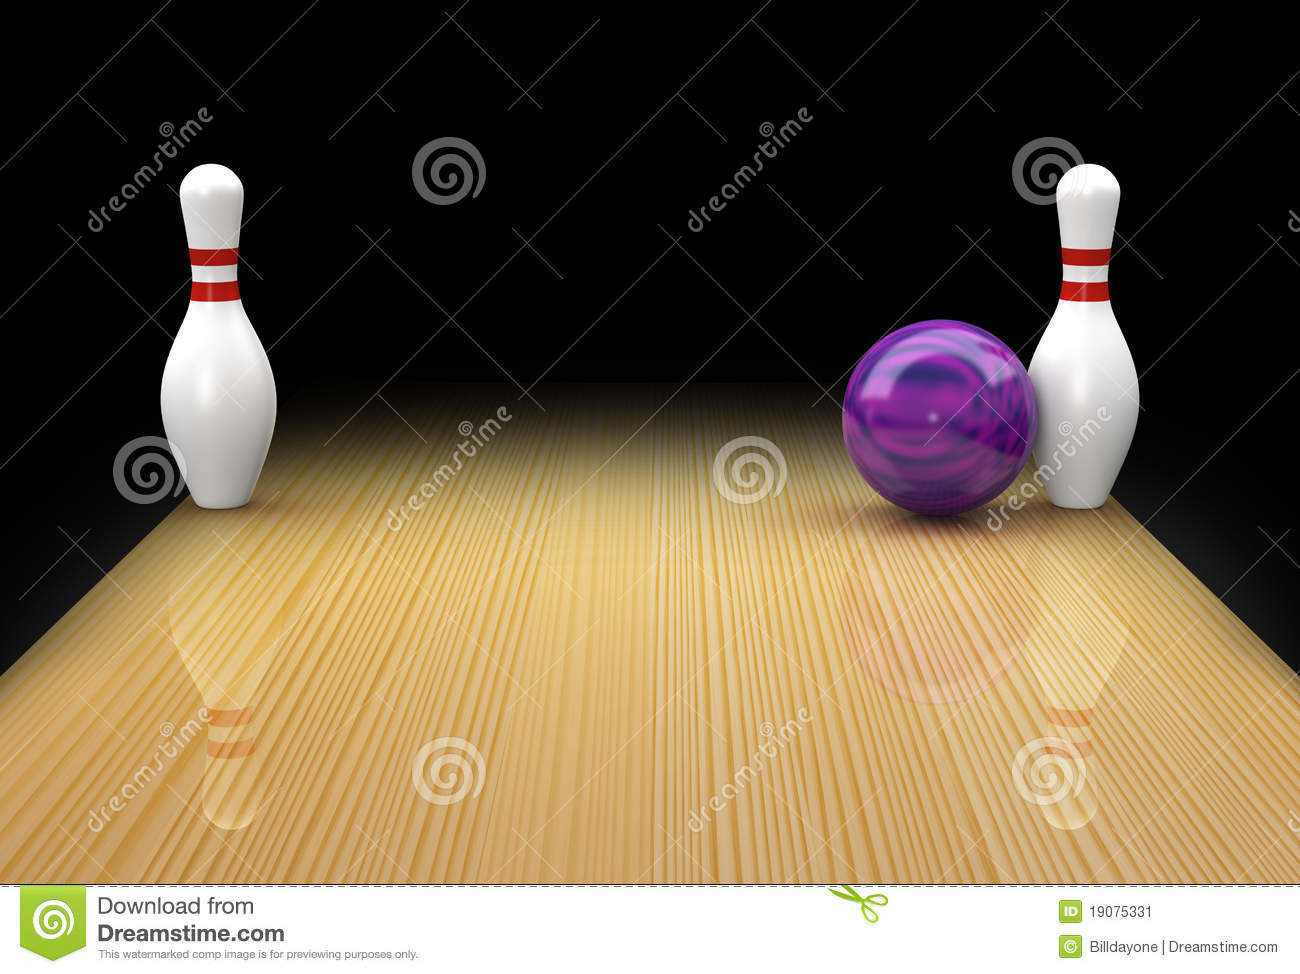 Ten Pin Bowling Spare As Snake Eyes Or Bed Posts Stock Image - Image: 19075331